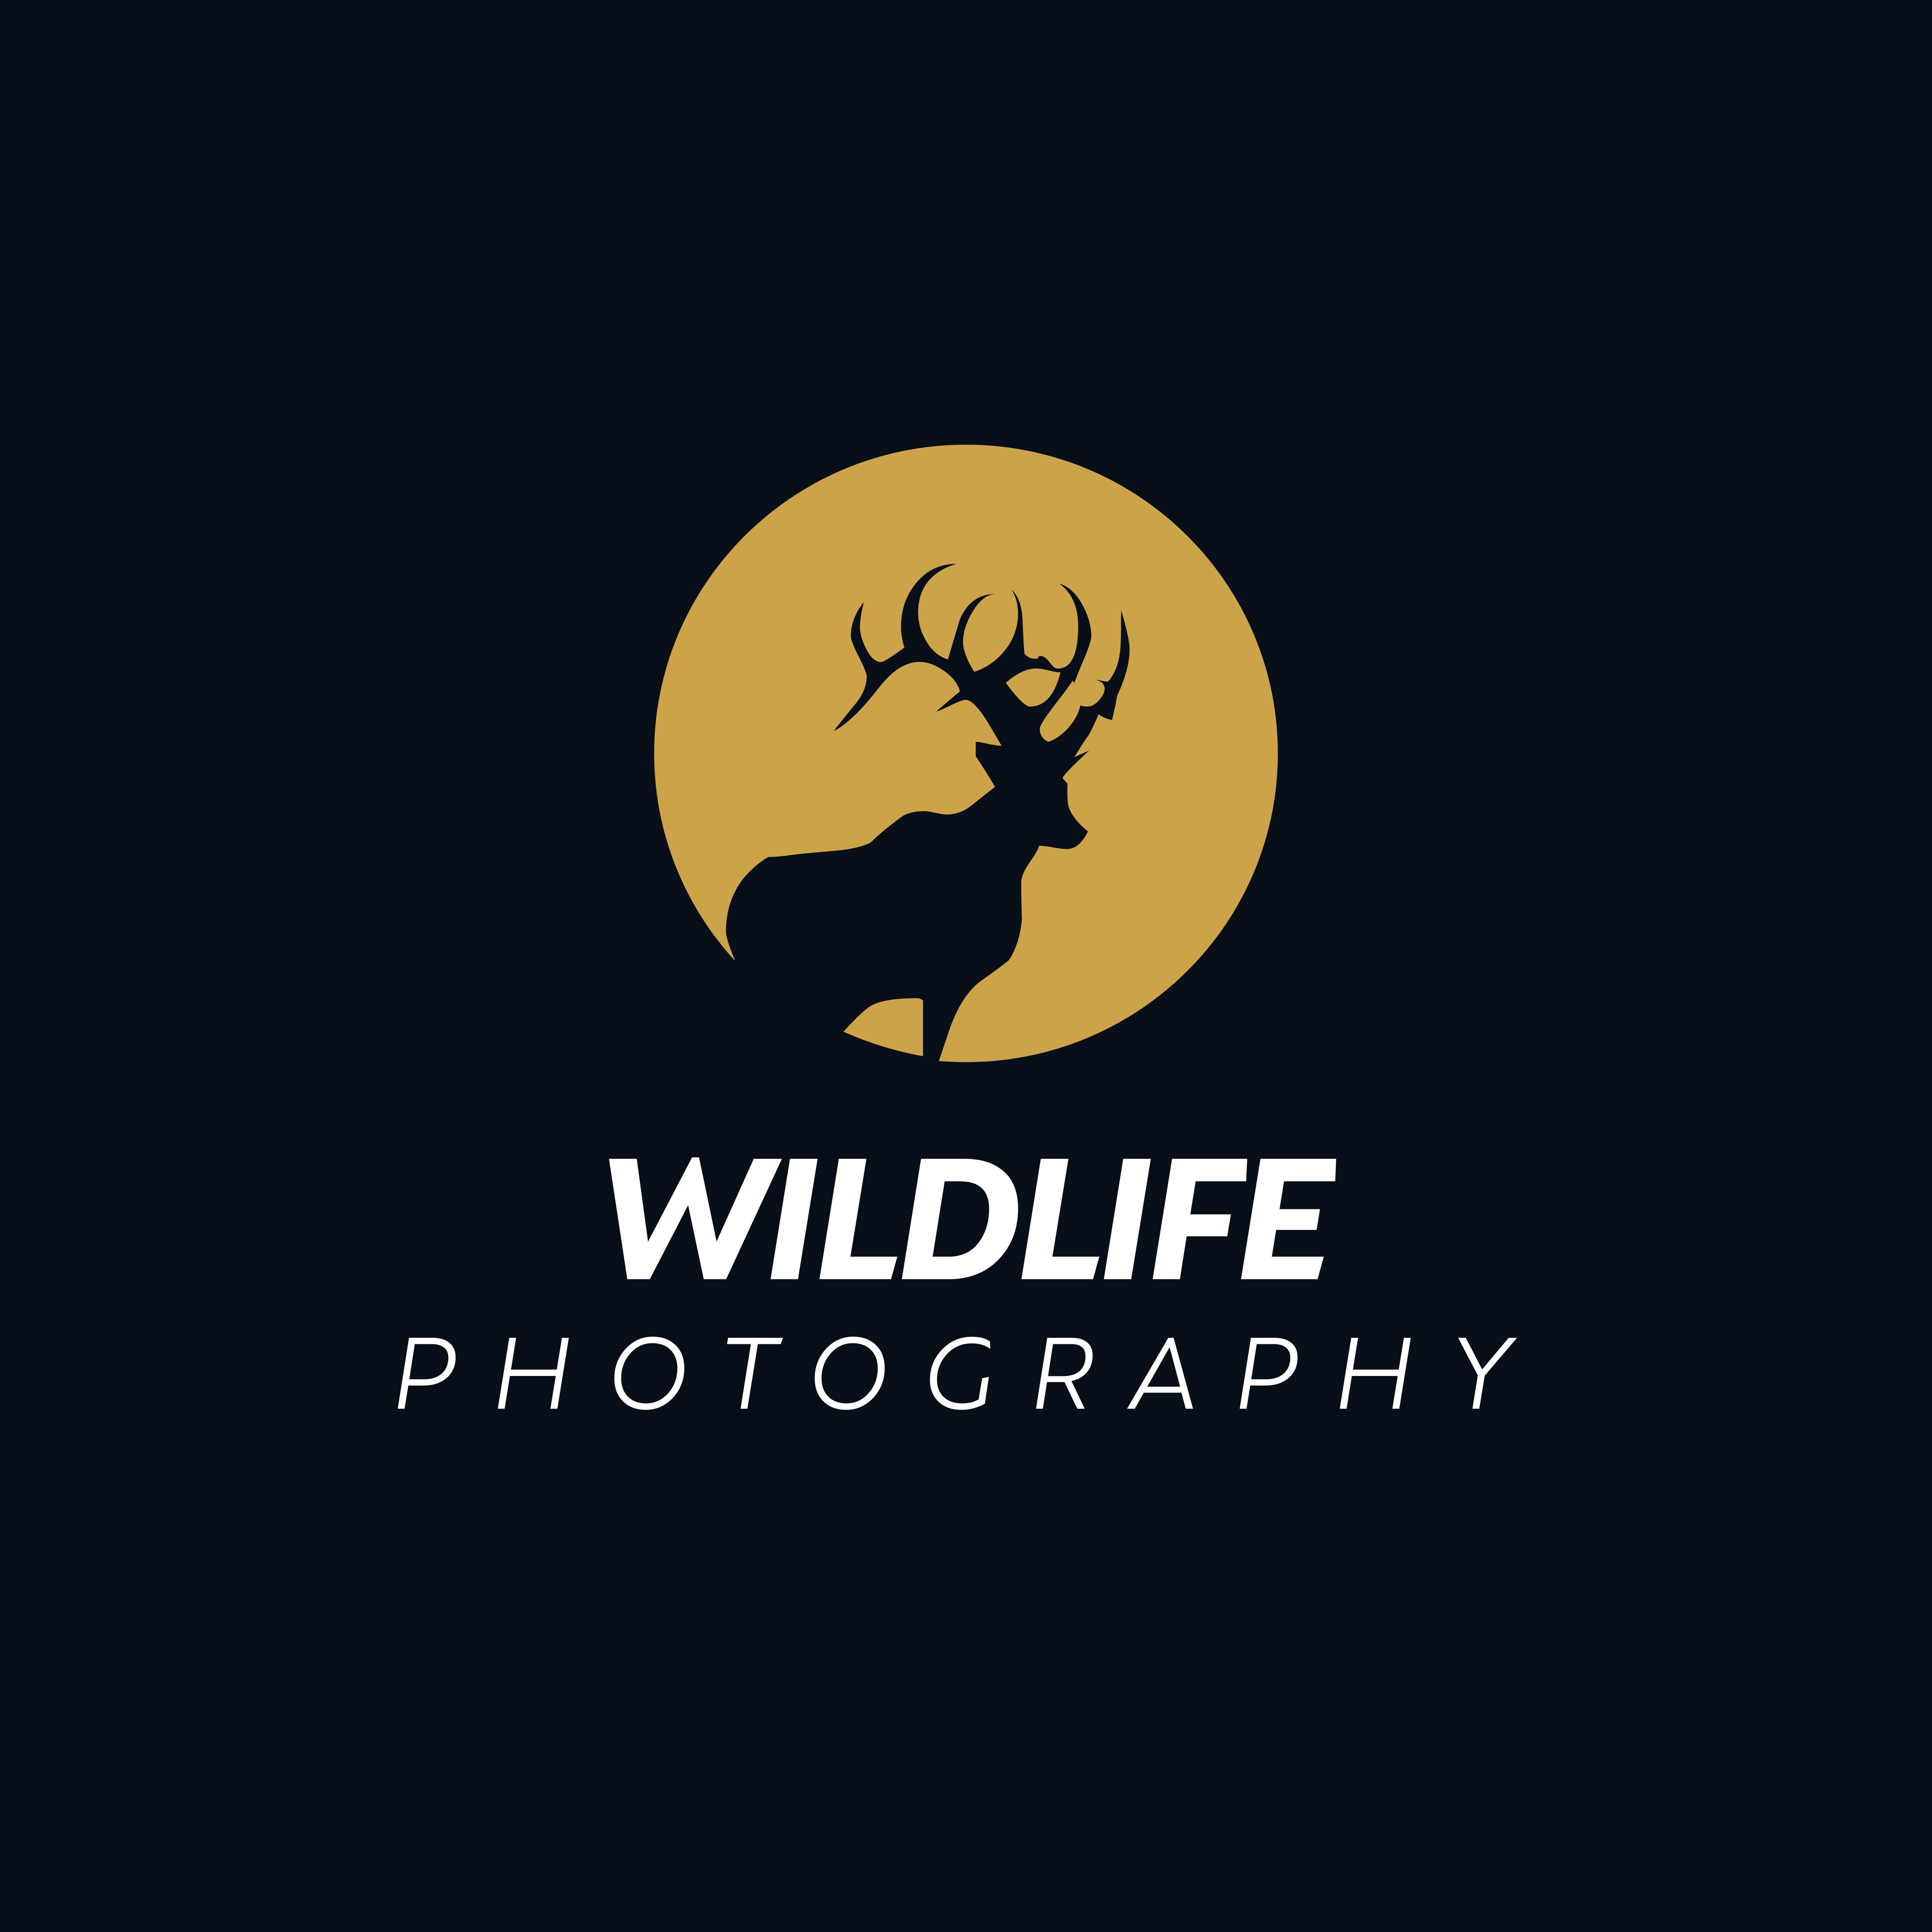 Deer Vector Logo Design Wild Animal With Horns Quality Stylish Modern Illustrations In The Style Of Vector Logo Design Pet Logo Design Vector Logo